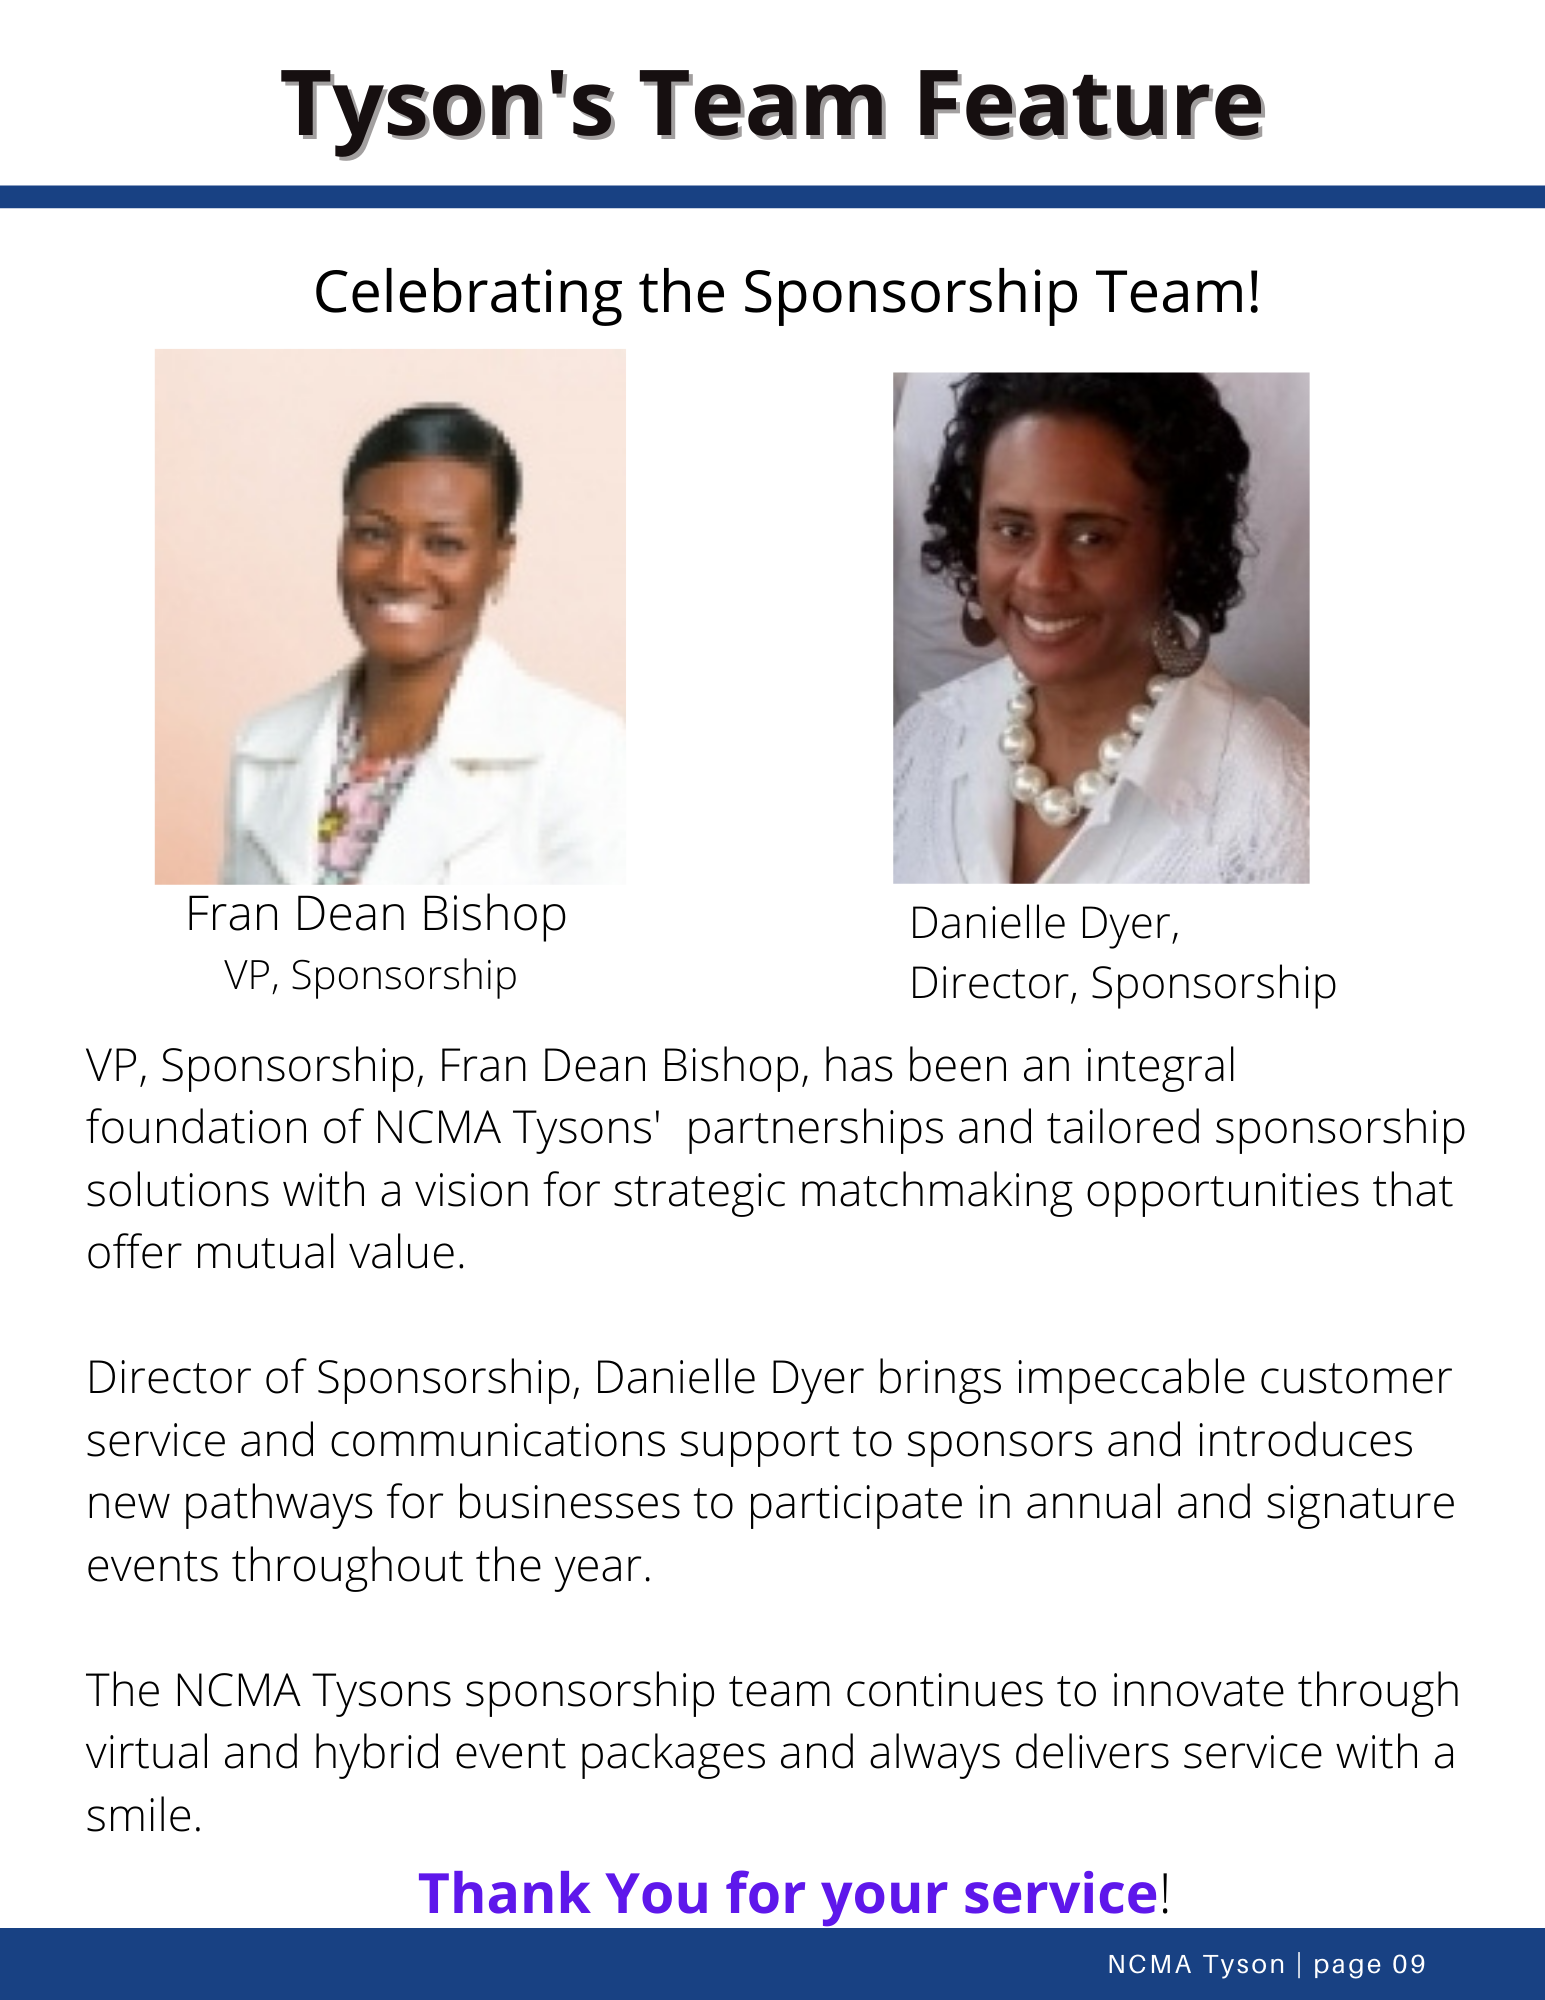 Tysons Team Feature- Sponsorship